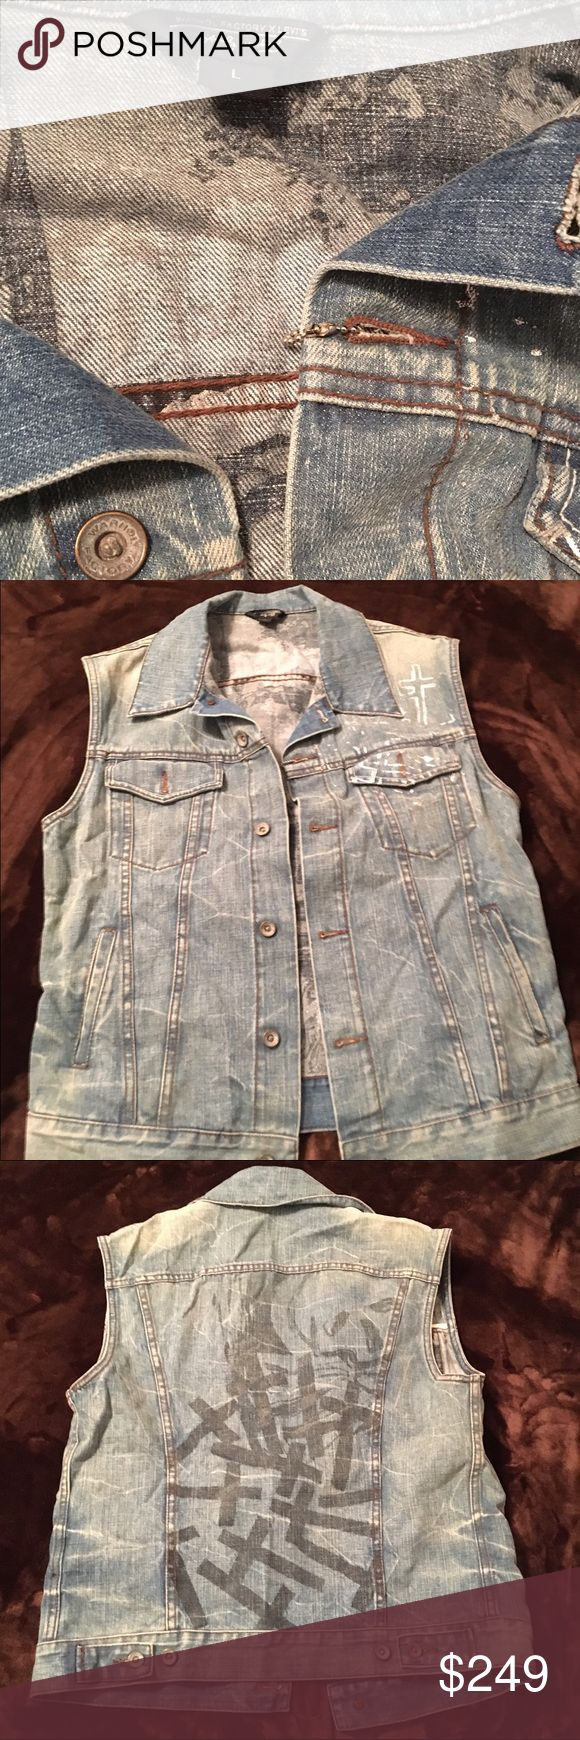 Levi's x Warhol Factory Denim Vest - 1/28 Sale! This Large Men's Levi's x Warhol Factory Denim Vest is super rare, and in like new condition. This is the only one I've ever seen. Cheers! Levi's Jeans